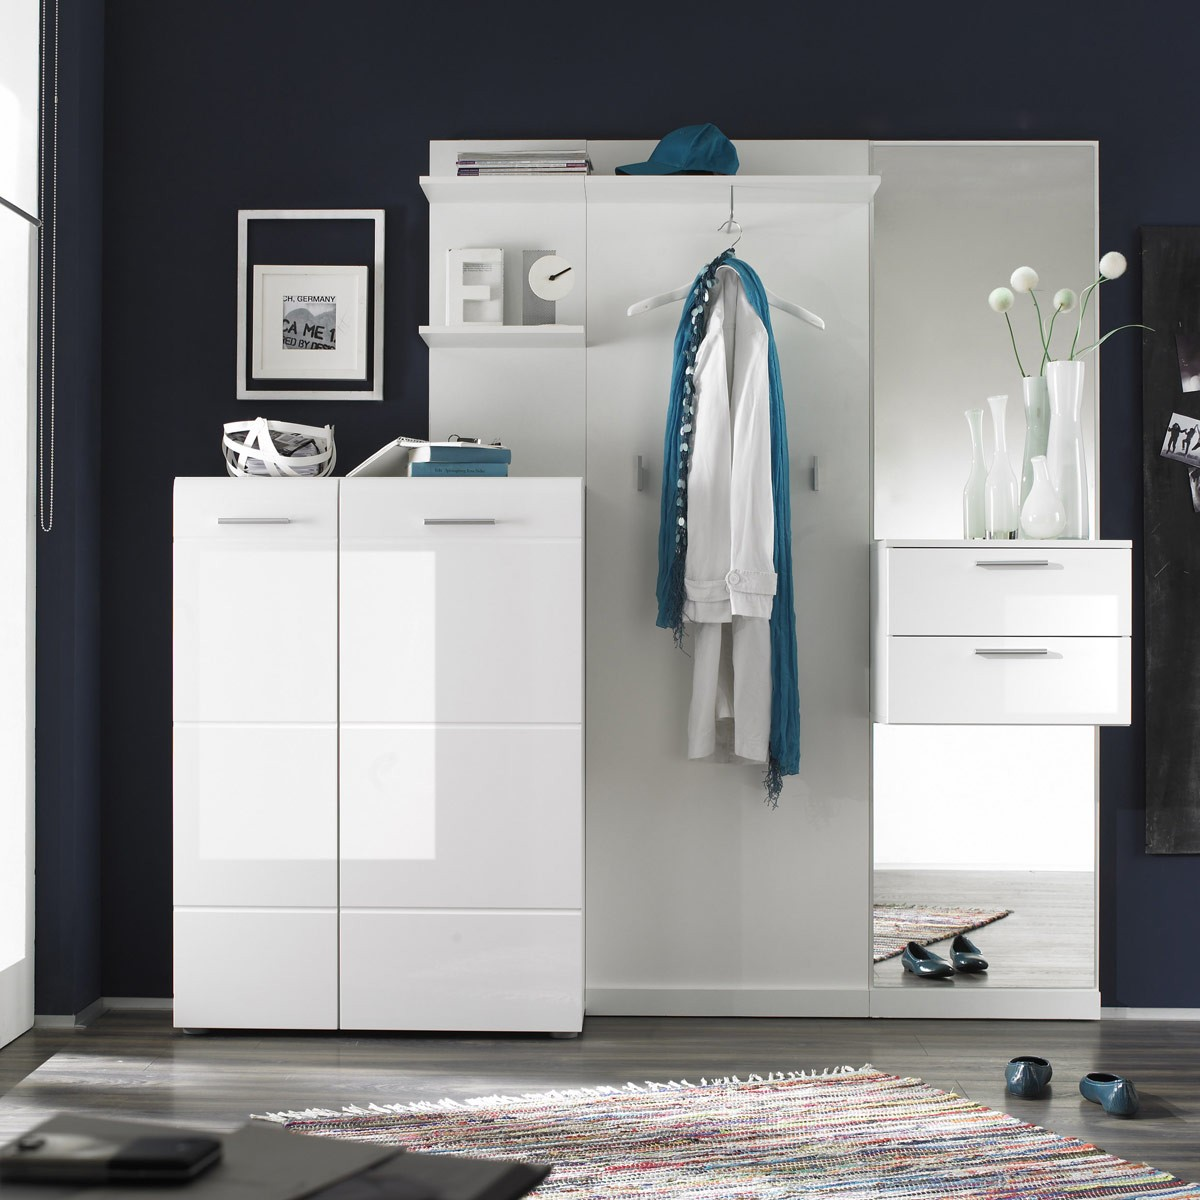 garderobe 4 teilig garderoben set garderobe modern in wei hochglanz wei ebay. Black Bedroom Furniture Sets. Home Design Ideas